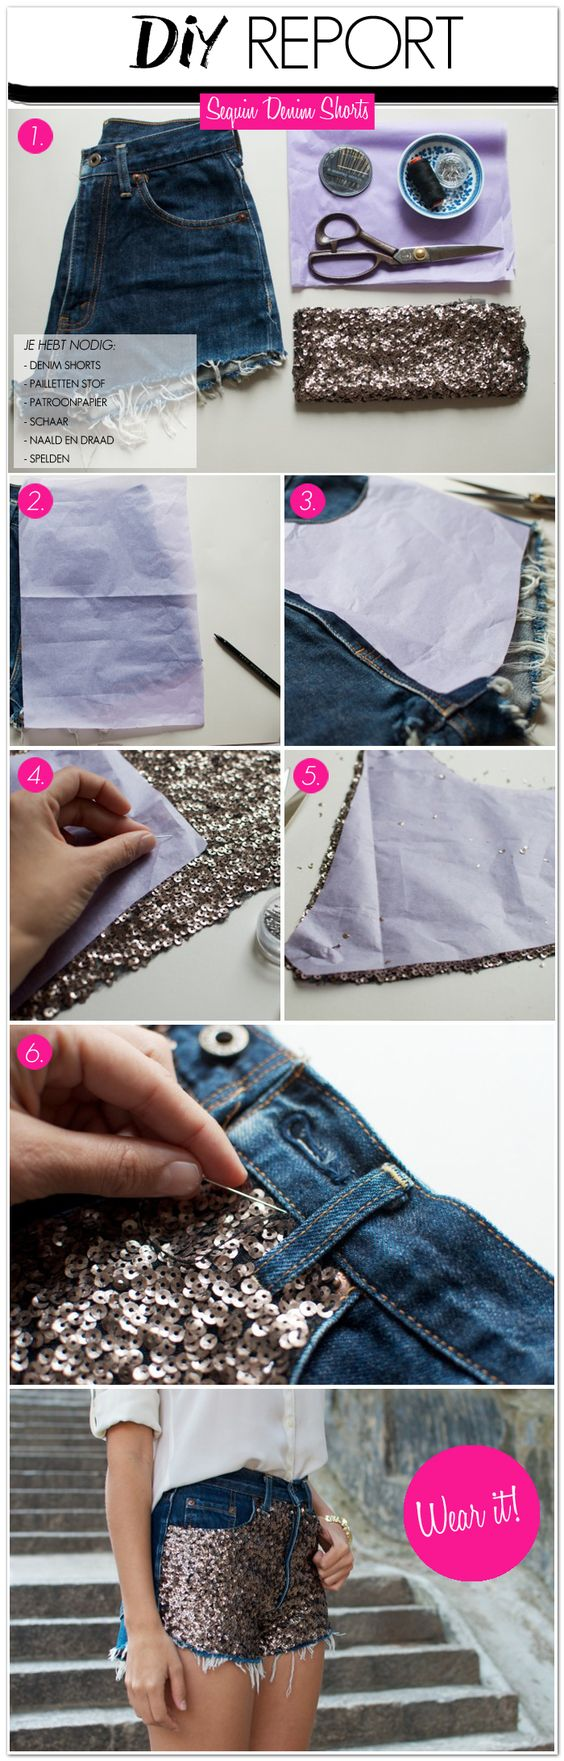 DIY Report: Sequin Denim Shorts: